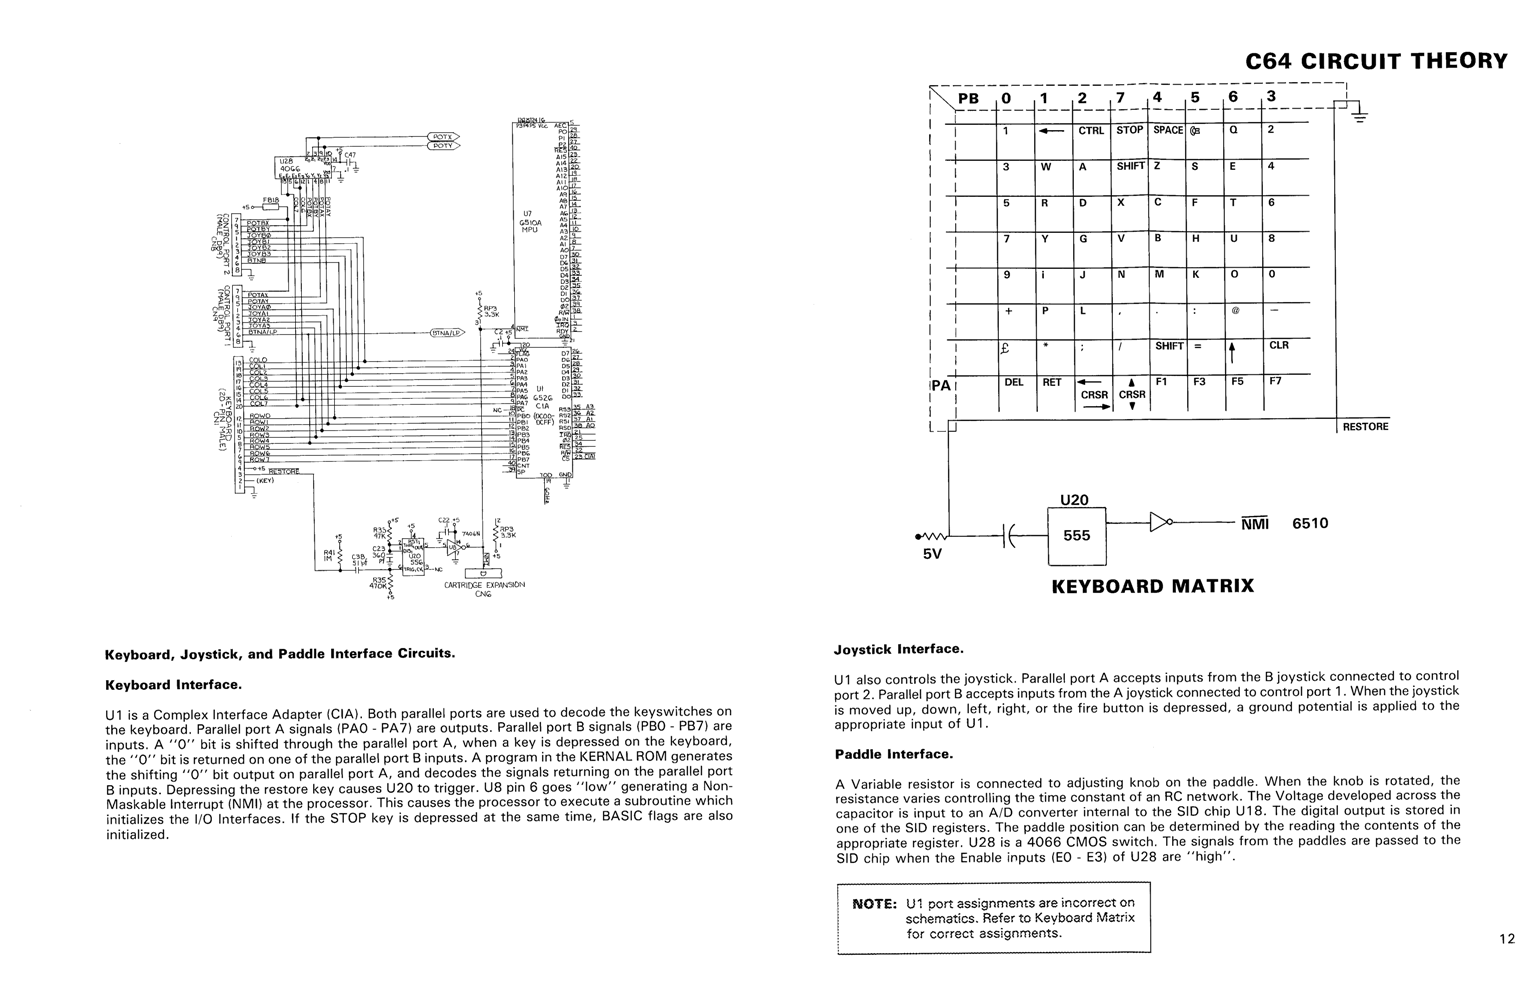 hight resolution of c64 keyboard and cia schematic from the c64 service manual